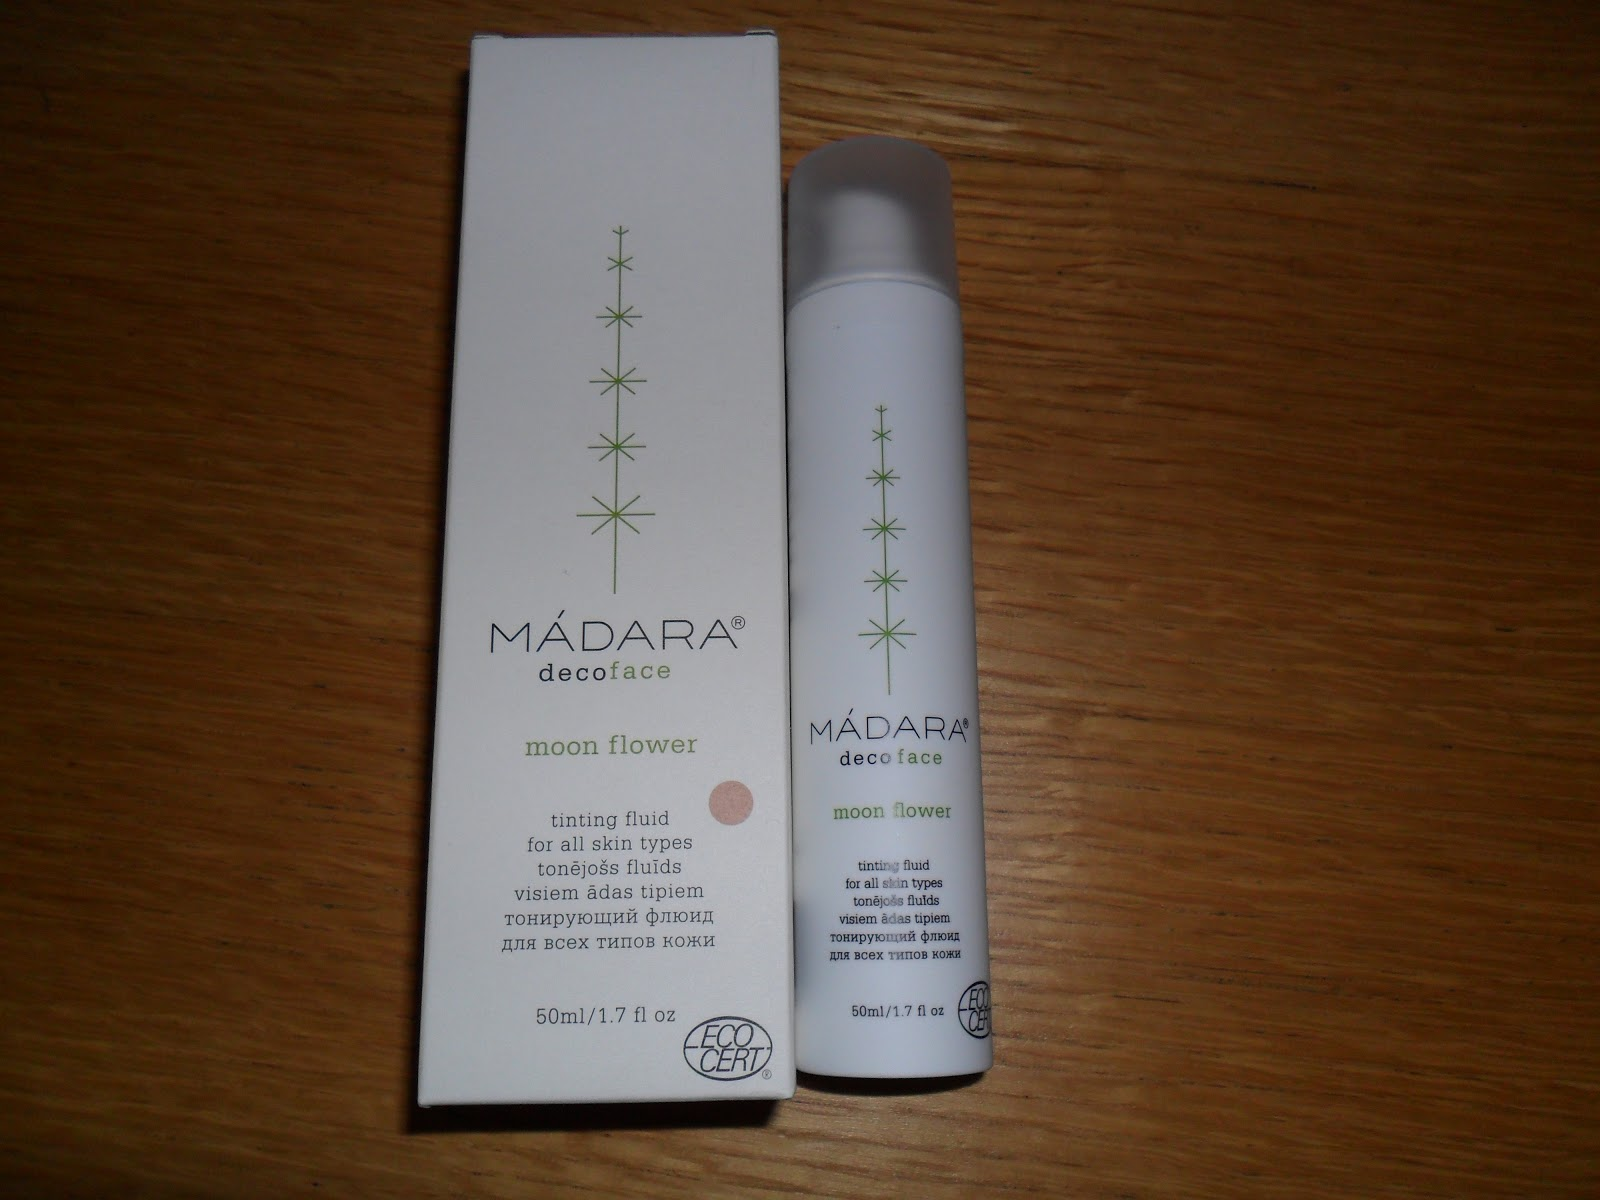 Madara Deco Face Tinting Fluid